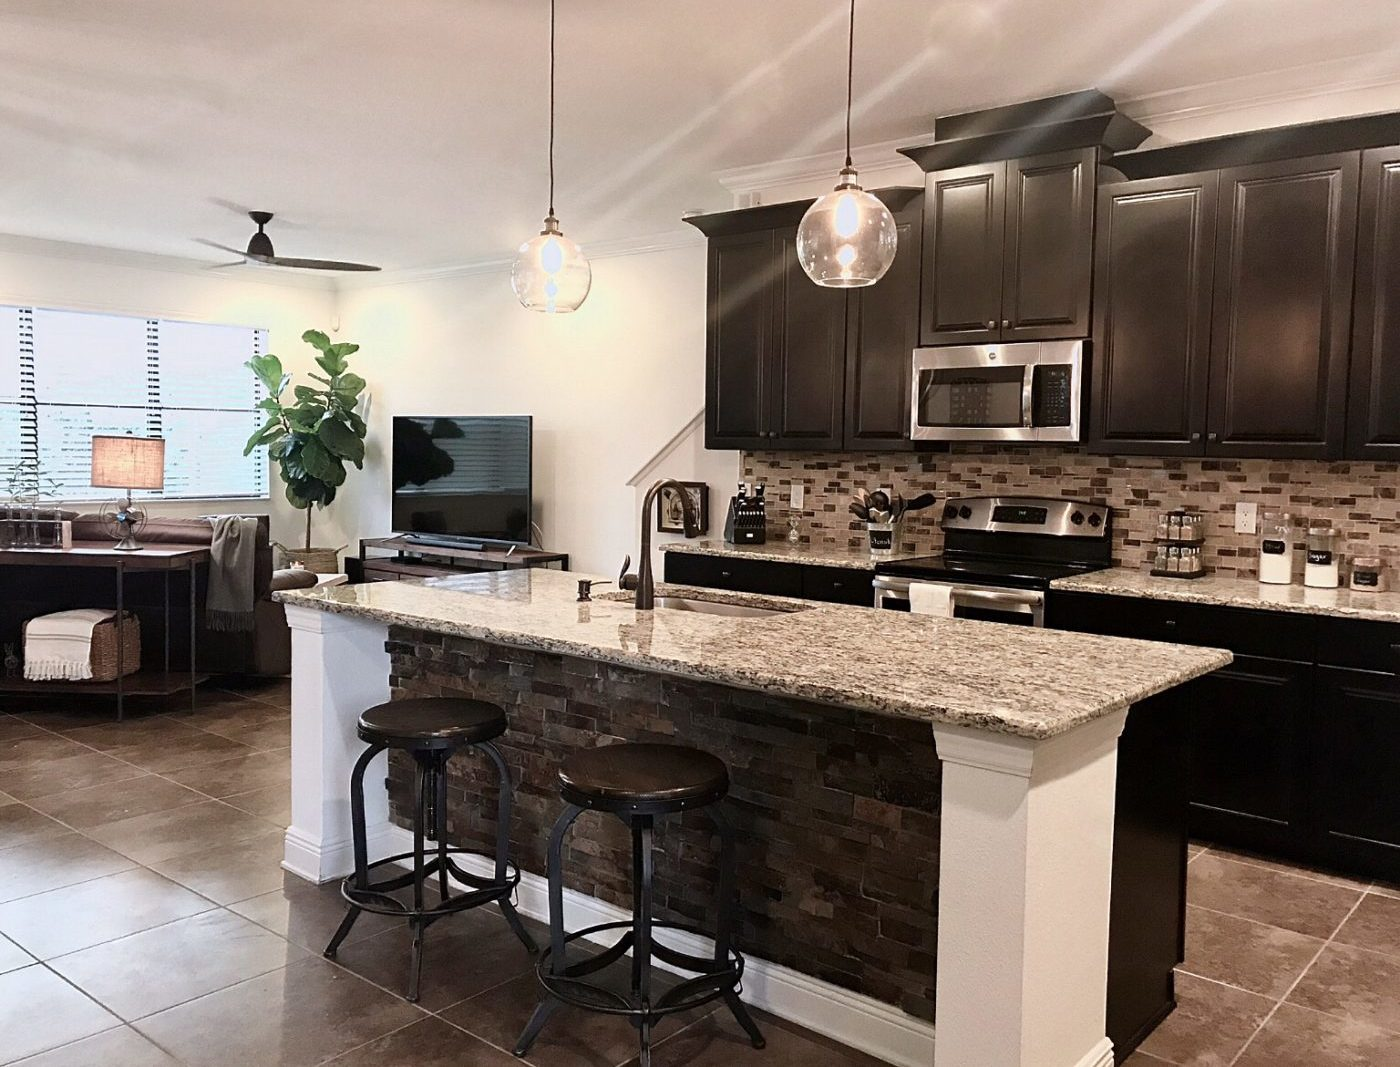 A de-cluttered kitchen and family room made these clients happy.